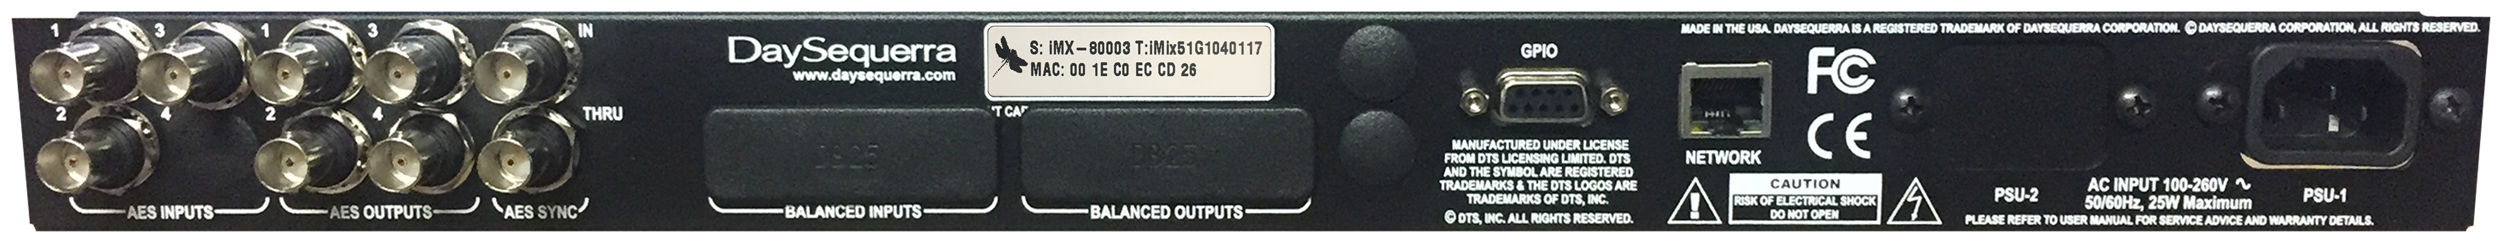 iMix 5.1 rear panel.png